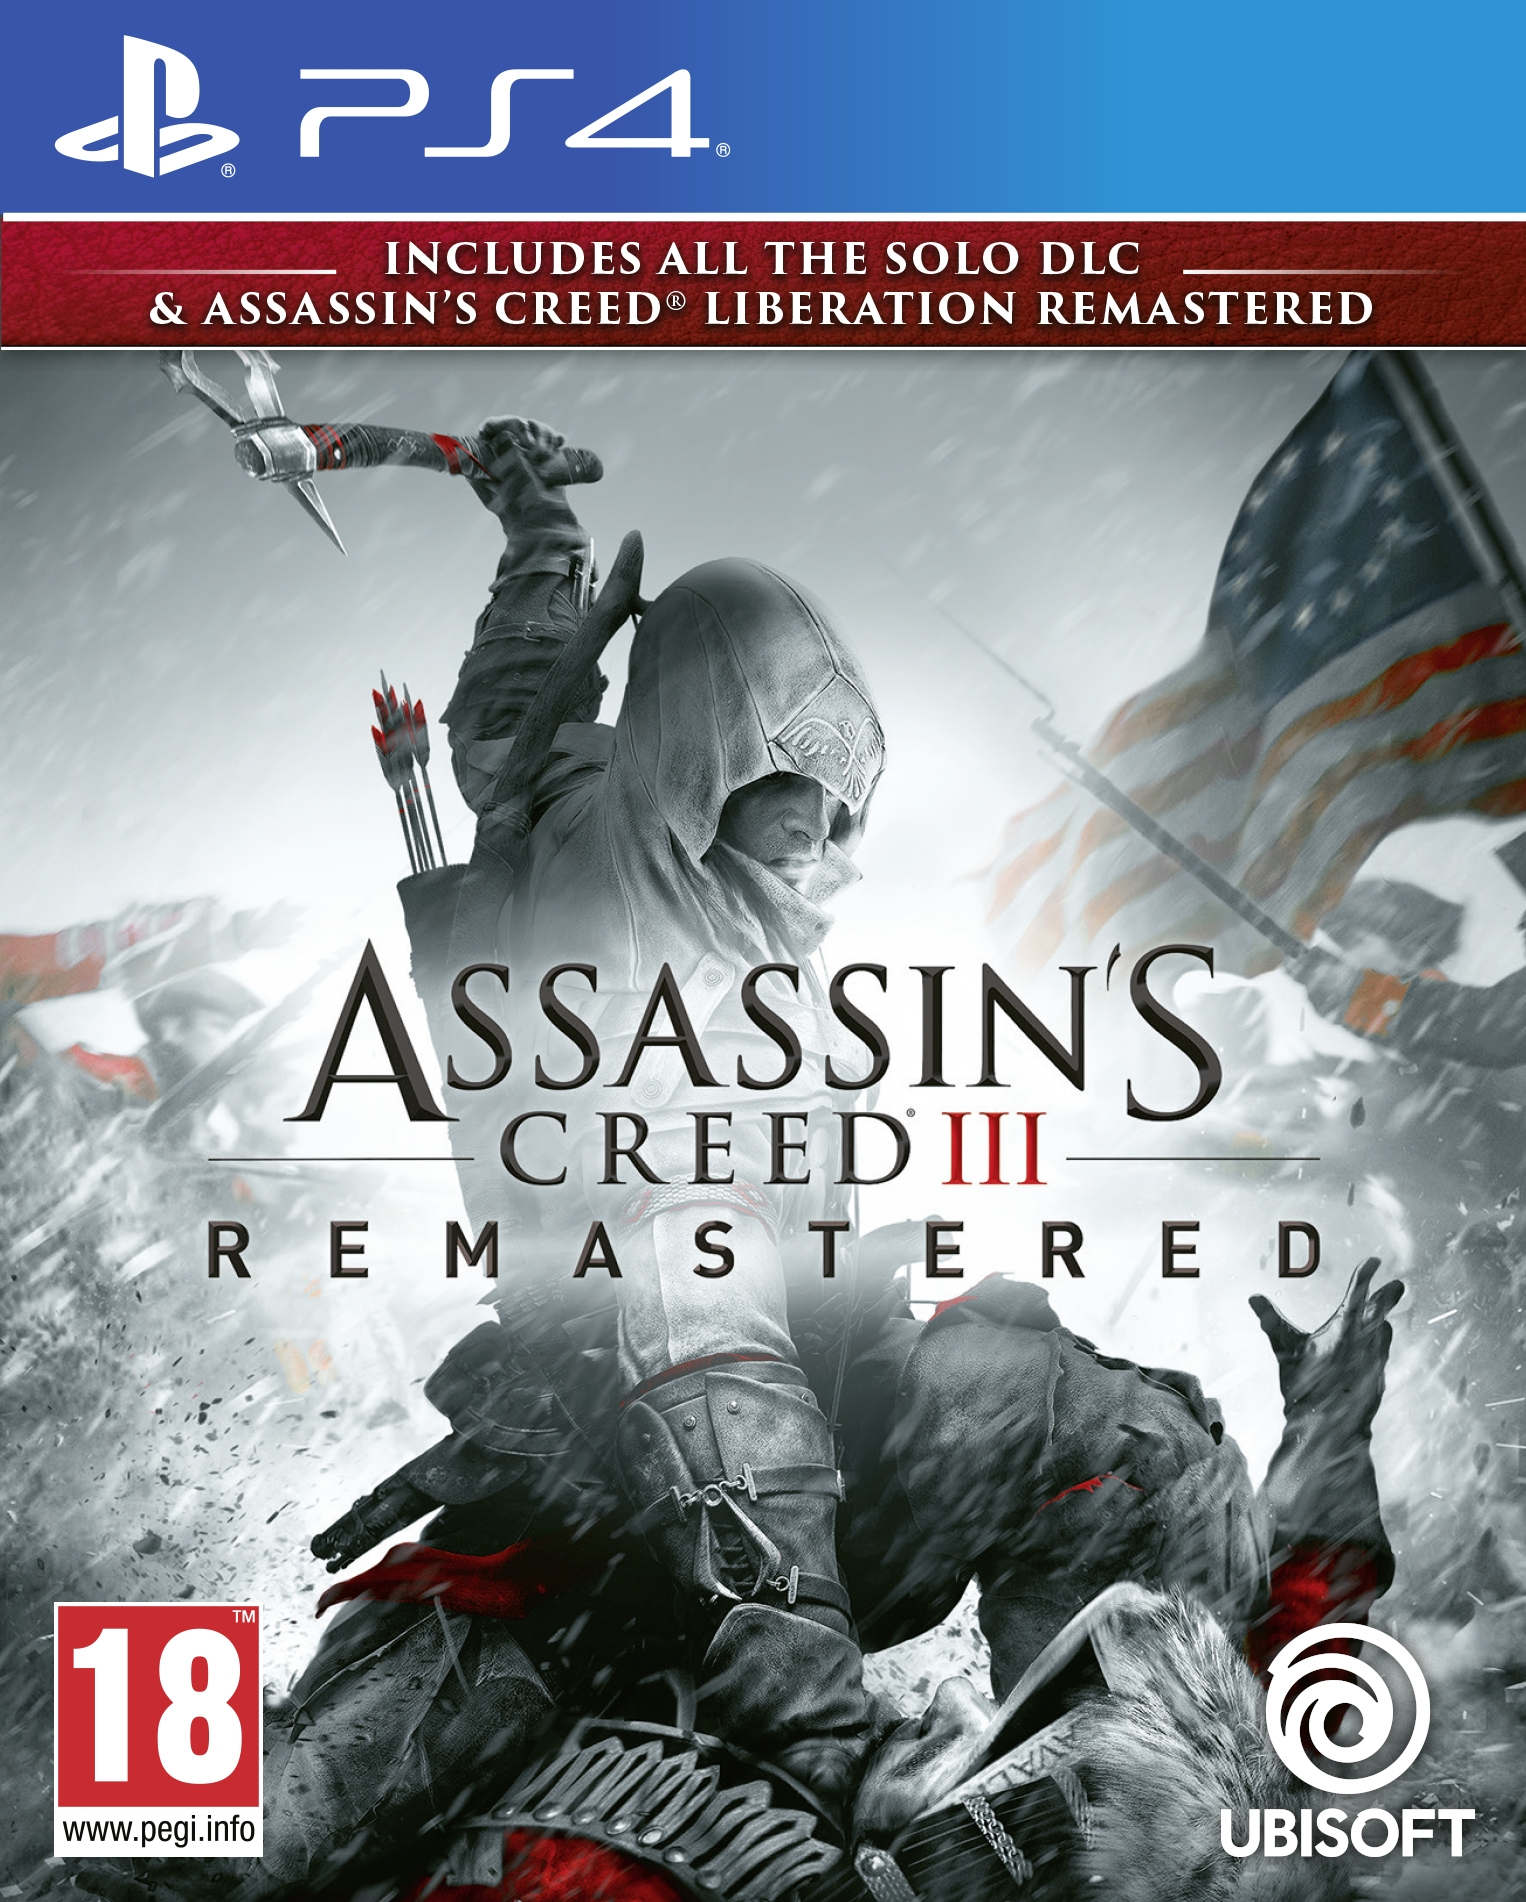 PS4 Assassin´s Creed 3 + Assassin´s Creed Liberation Remastered